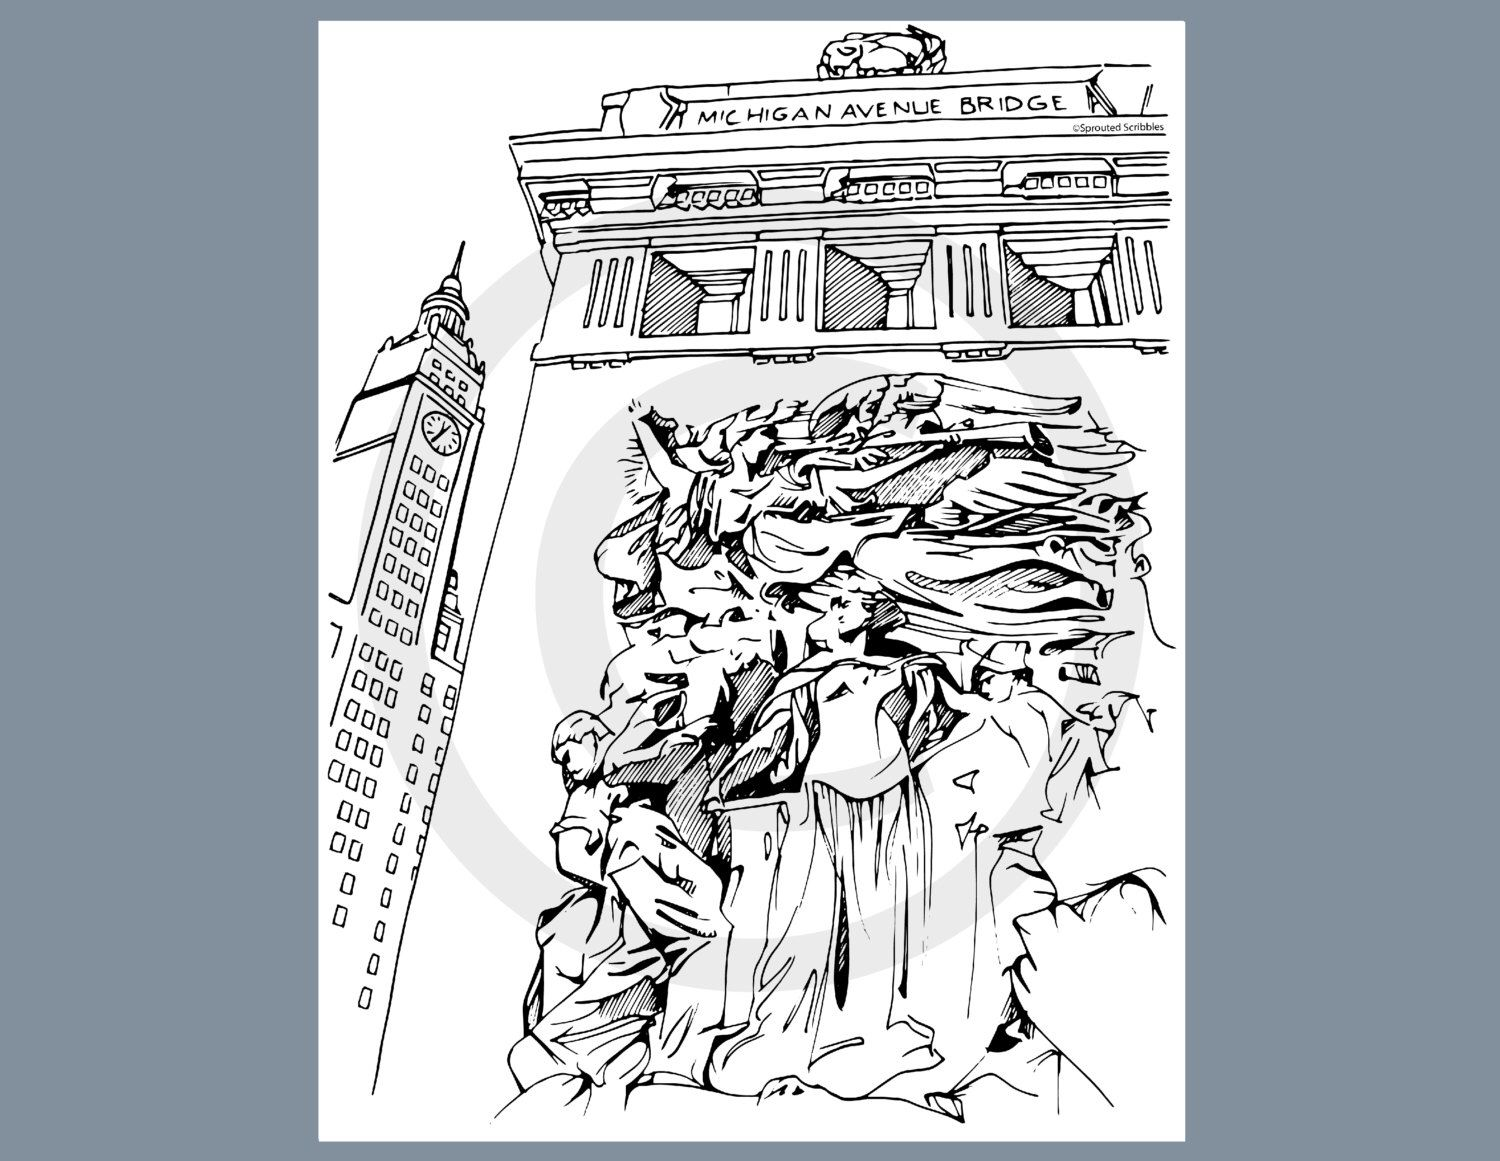 Chicago Michigan Avenue DuSable Bridge - Instant Download - Digital File - Coloring Page by Travis Clement by SproutedScribbles on Etsy https://www.etsy.com/listing/271015534/chicago-michigan-avenue-dusable-bridge